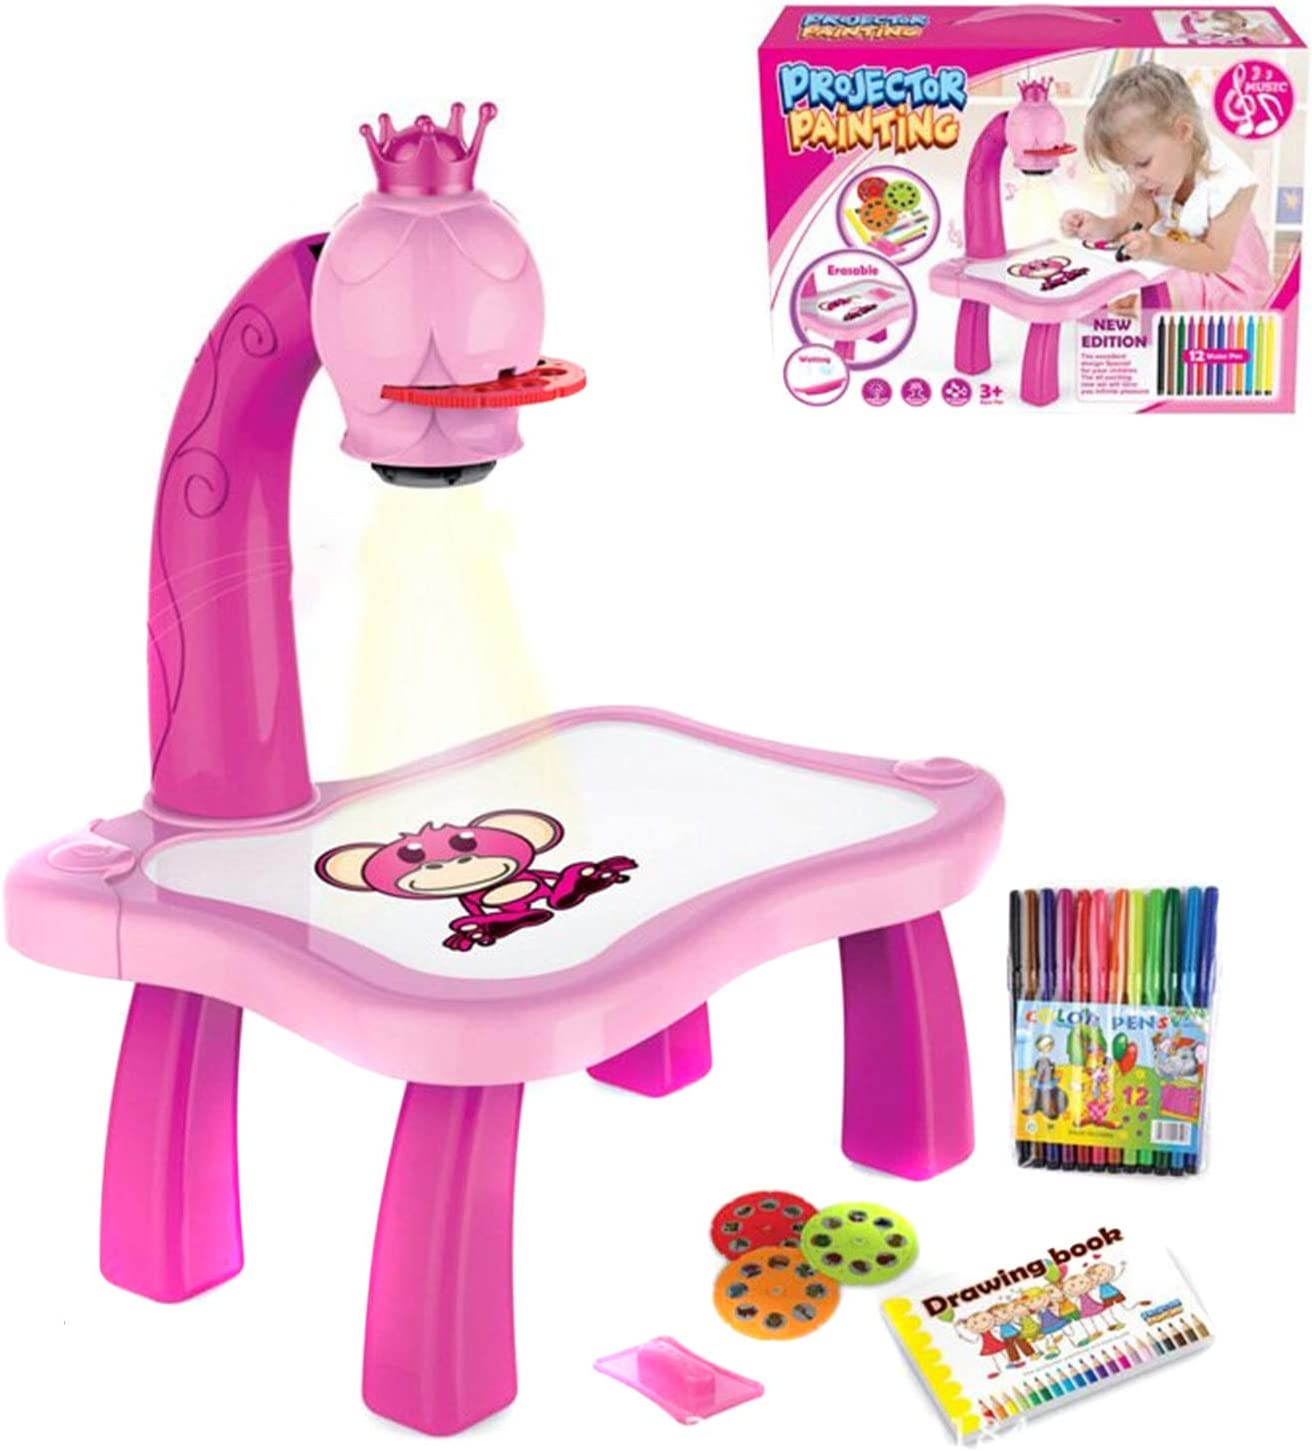 Syfinee Educational Toys for 3 Year Old Learning Toys Trace And Draw Projector Toy Kids Drawing Projector Table Child Learning Desk with Smart Projector with Light Music